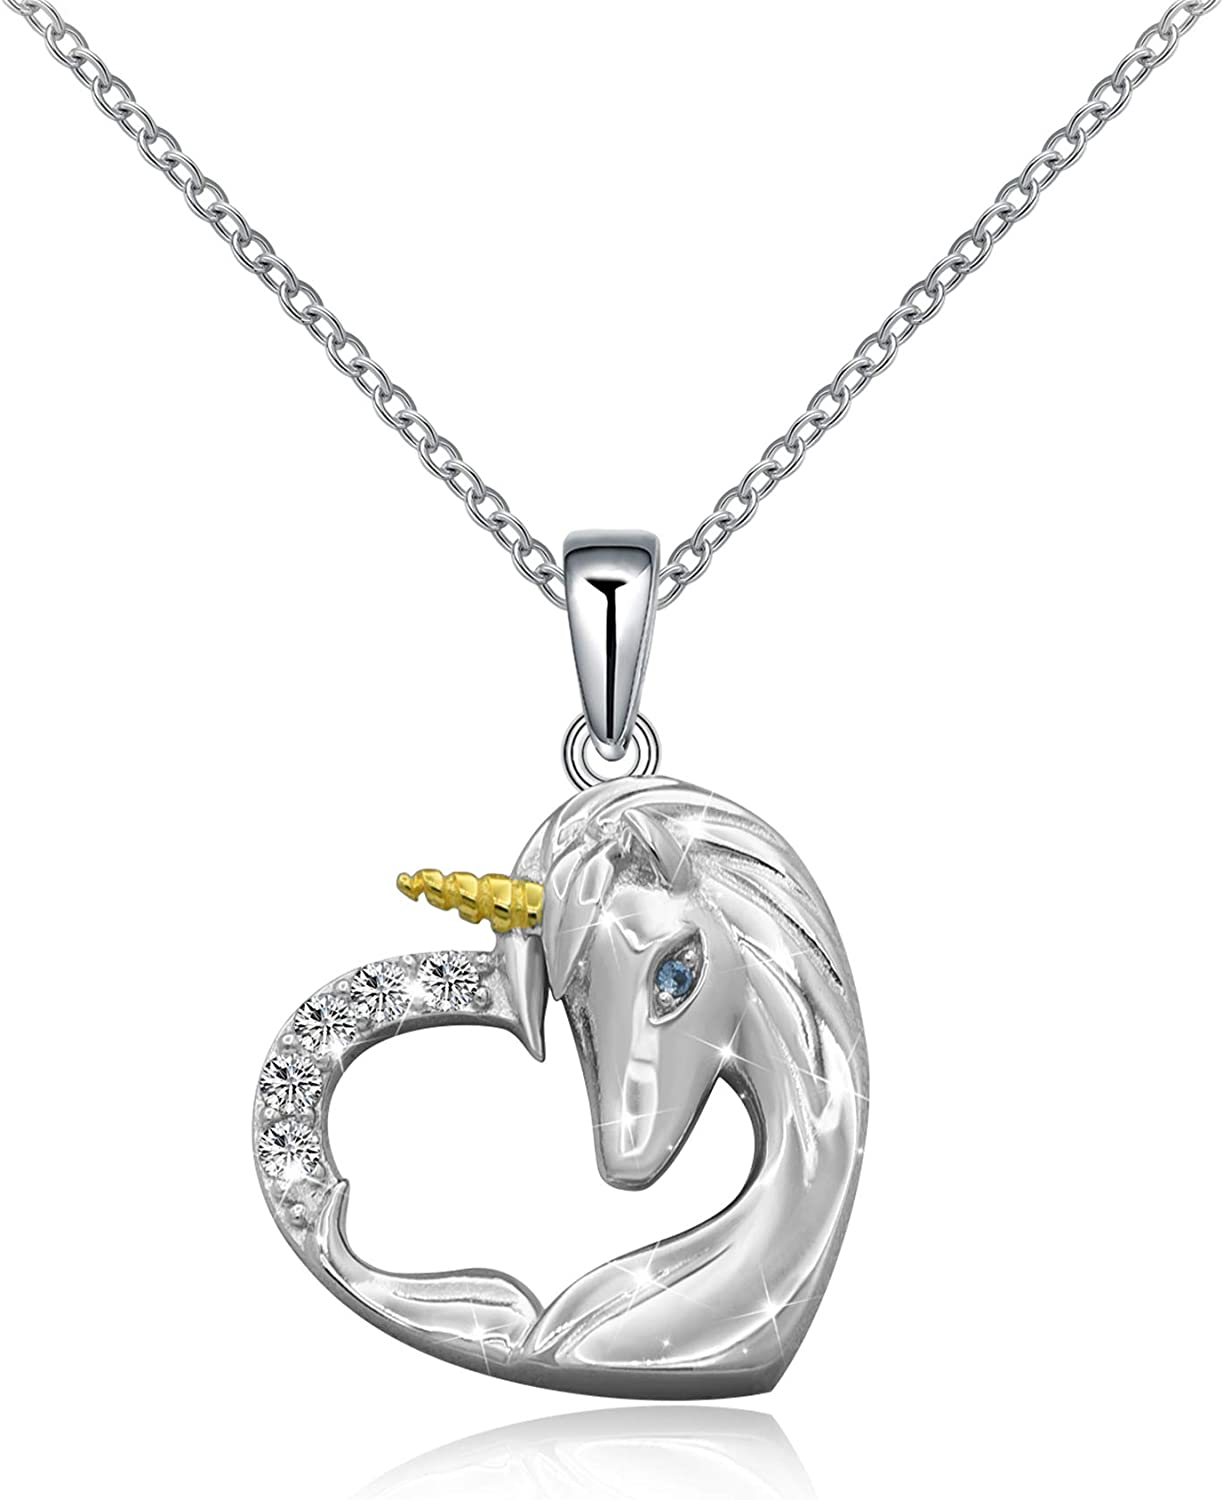 ACJNA 925 Sterling Silver Unicorn Pendant Necklace Rings Gifts for Girls Women